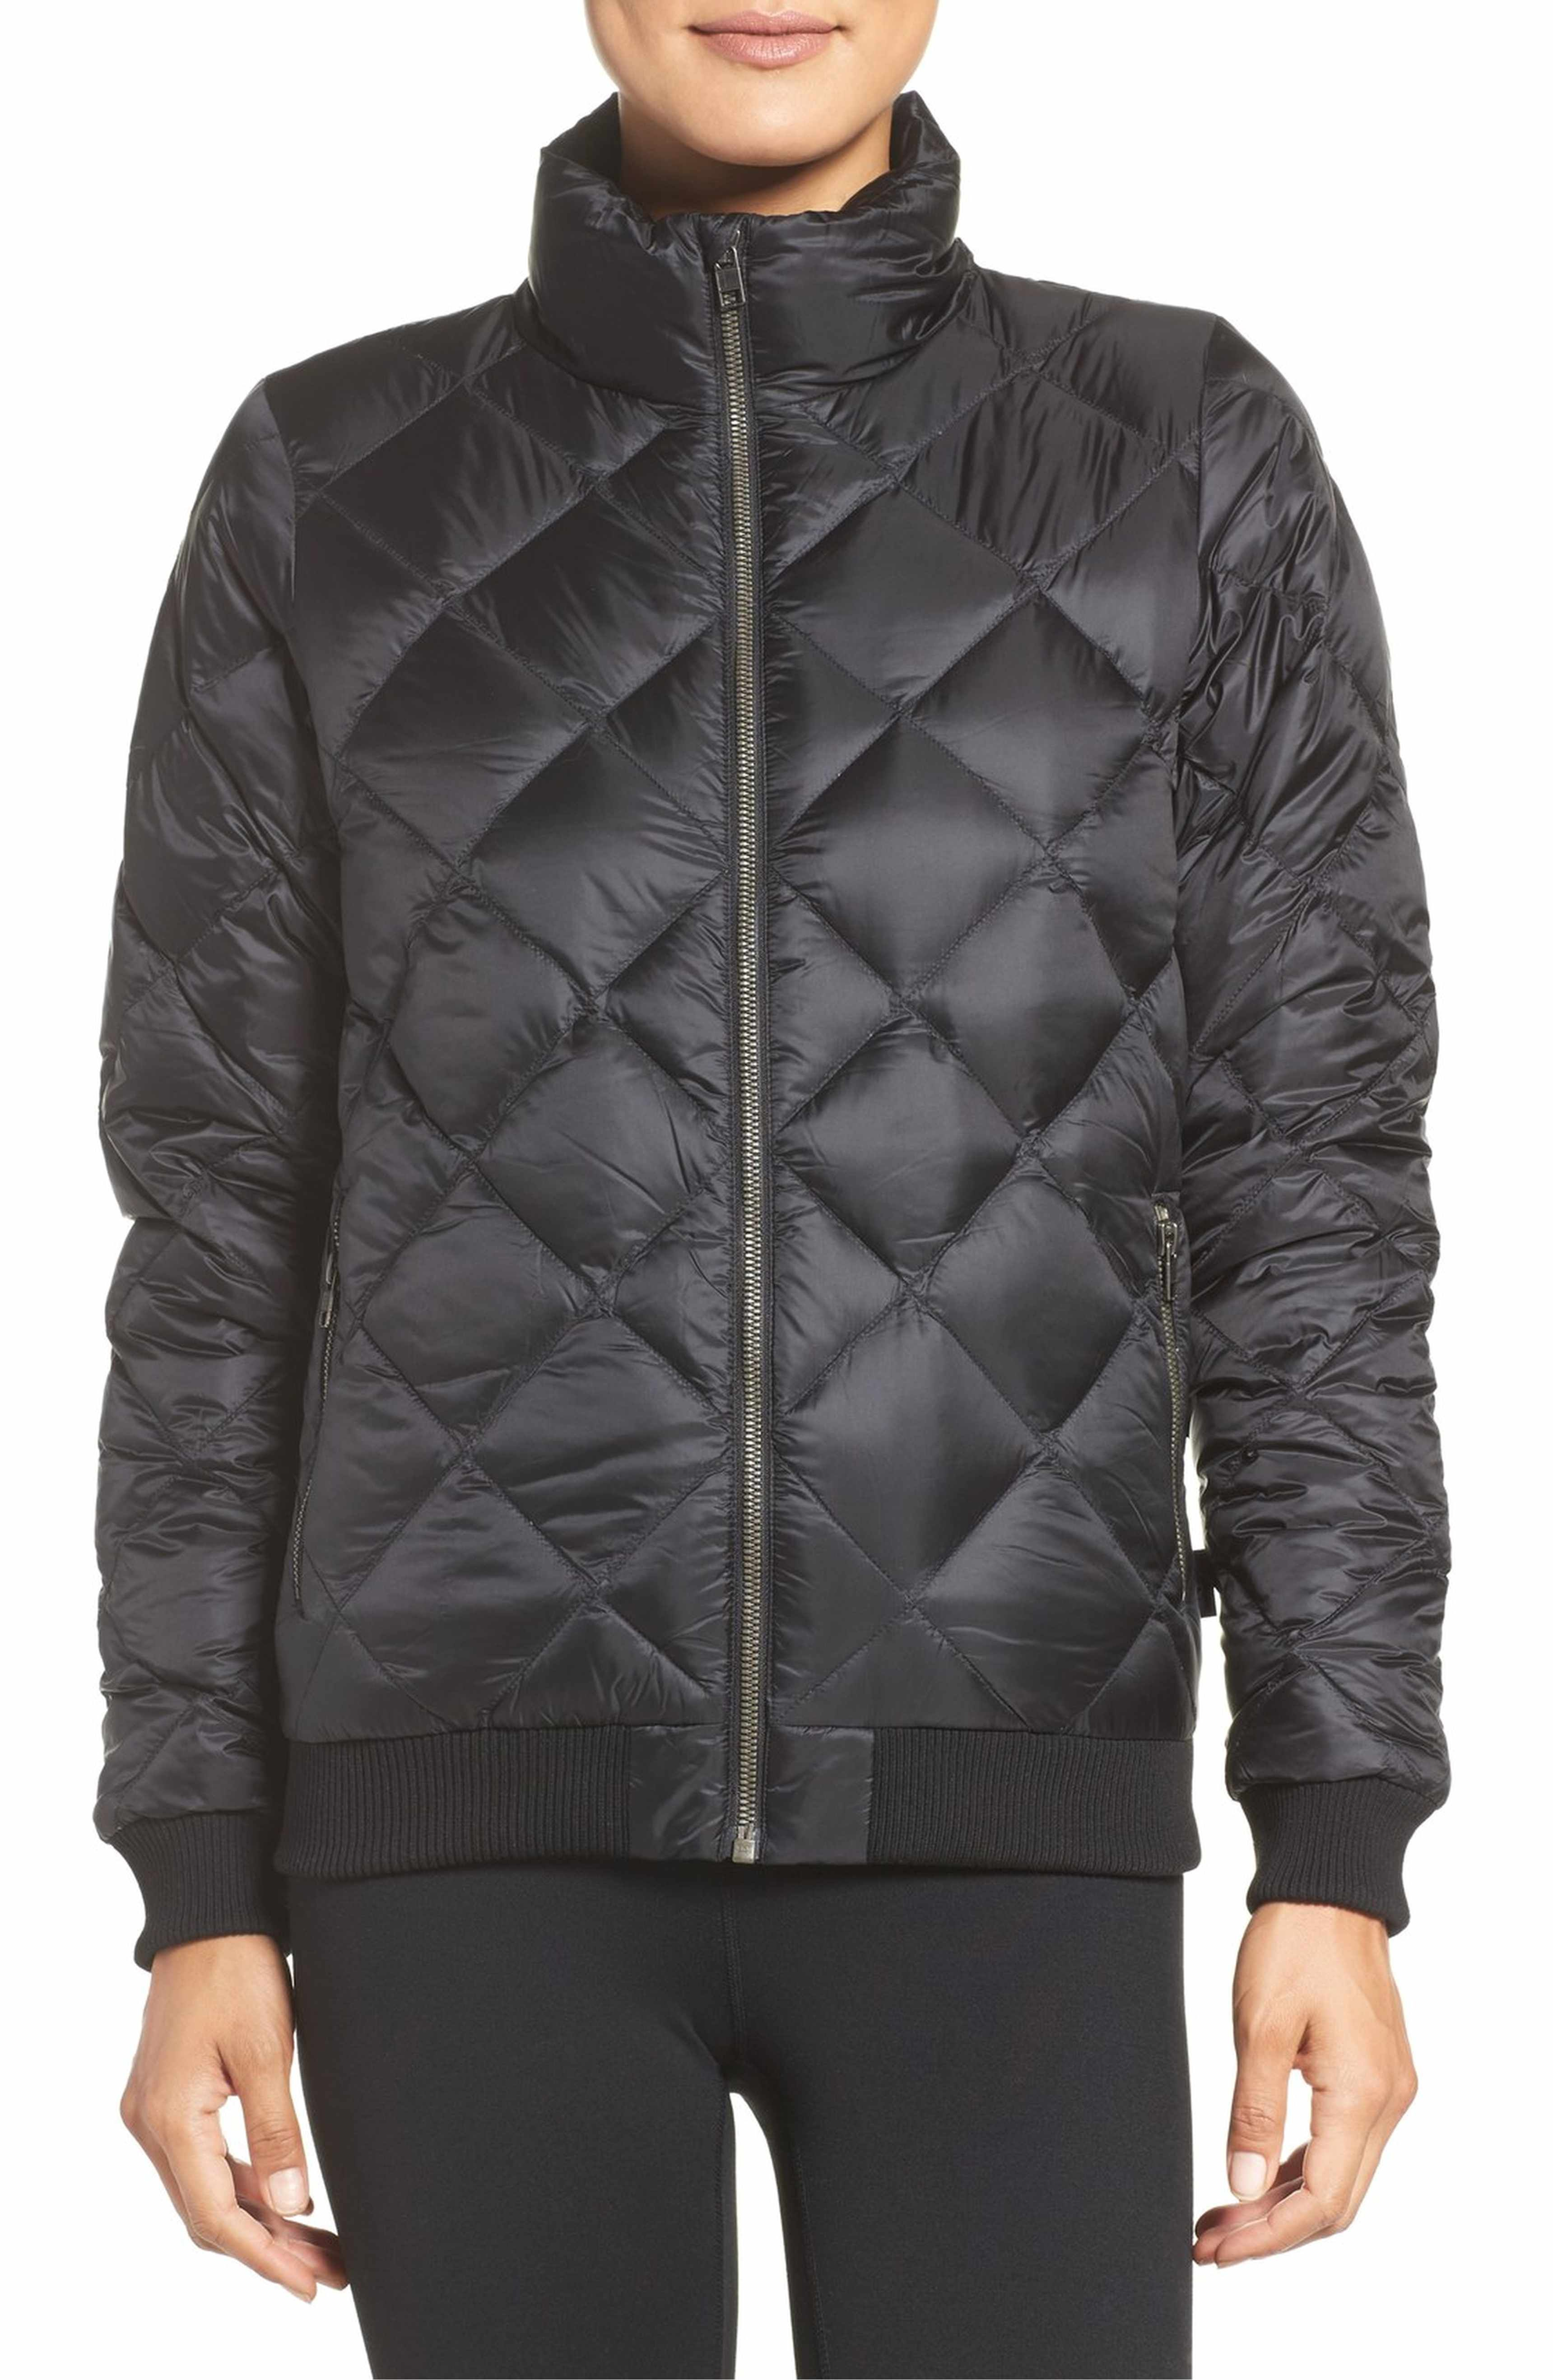 Patagonia Prow Down Bomber Jacket Nordstrom Jackets Bomber Jacket Women Bomber Jacket [ 5272 x 3440 Pixel ]